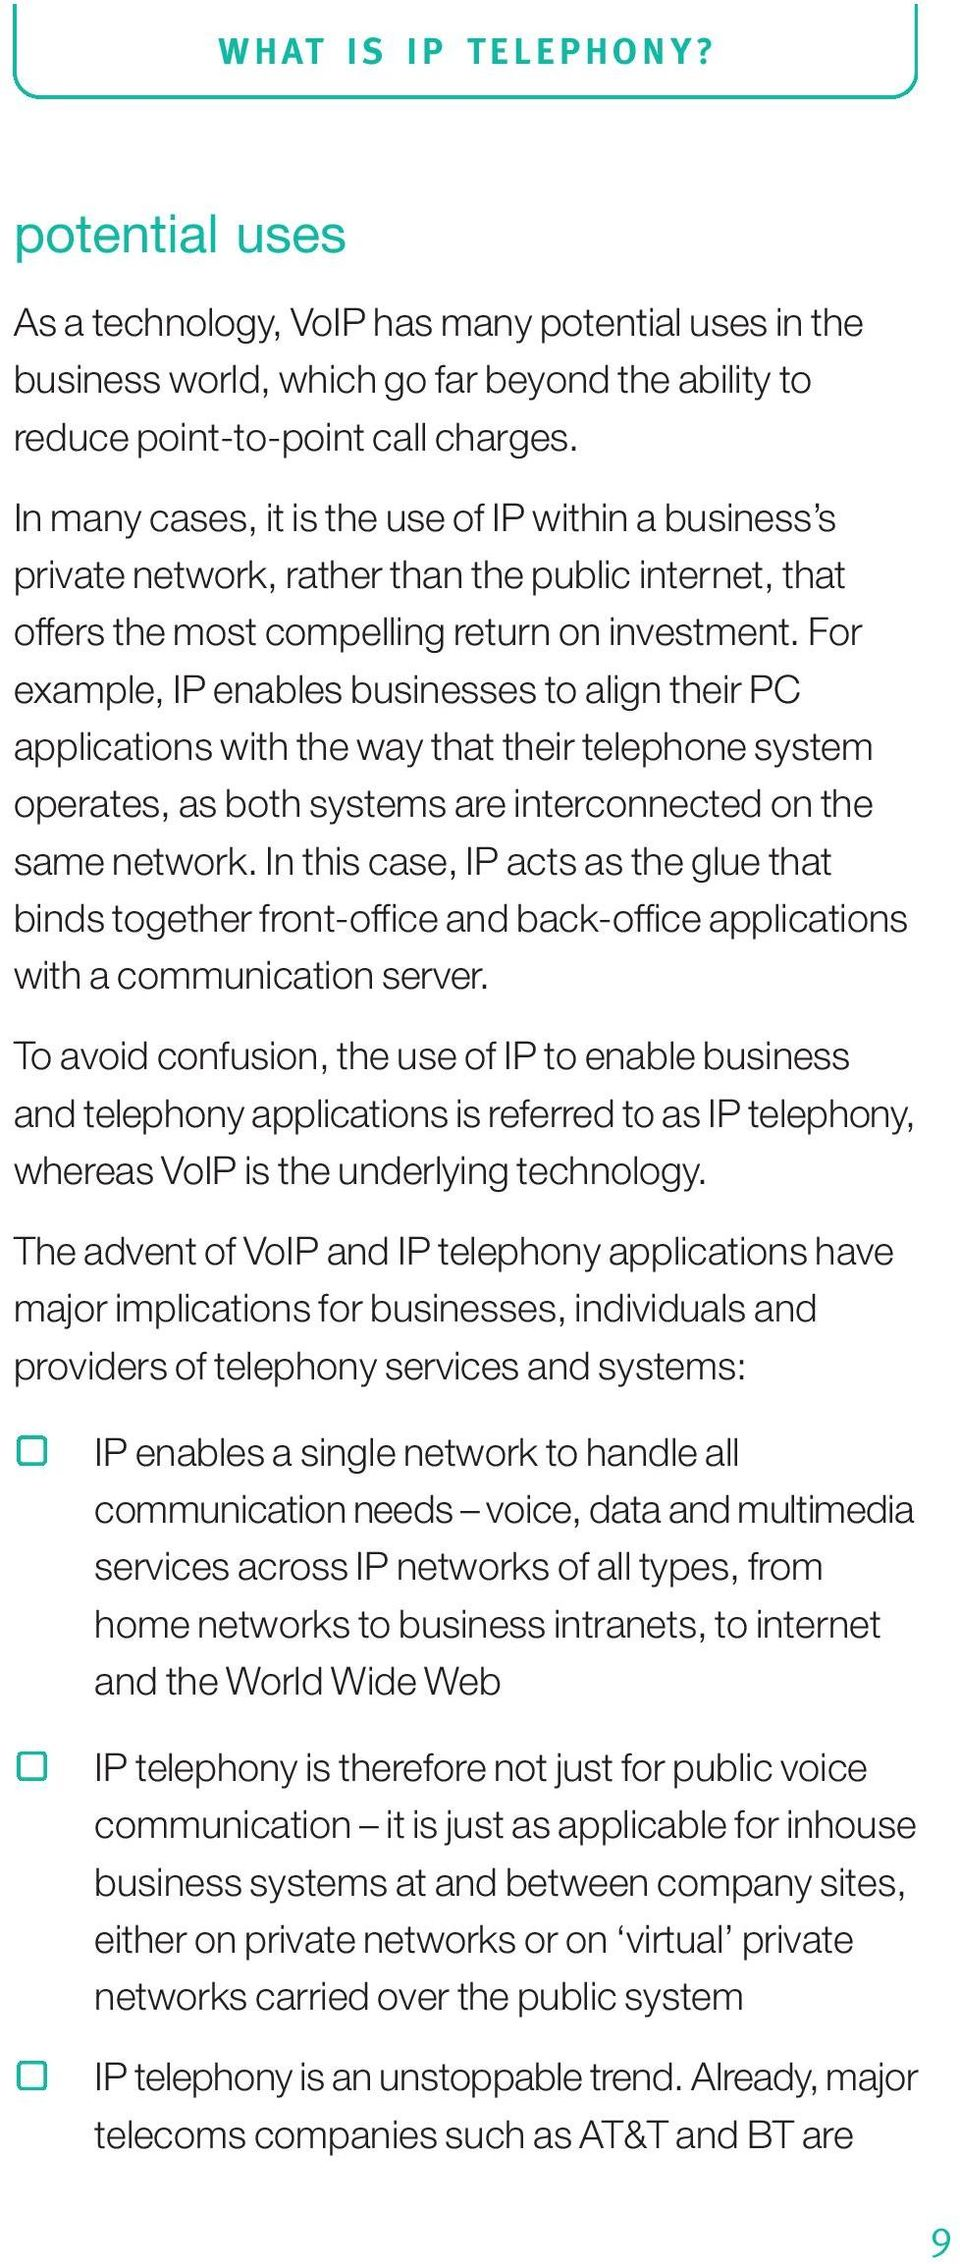 For example, IP enables businesses to align their PC applications with the way that their telephone system operates, as both systems are interconnected on the same network.